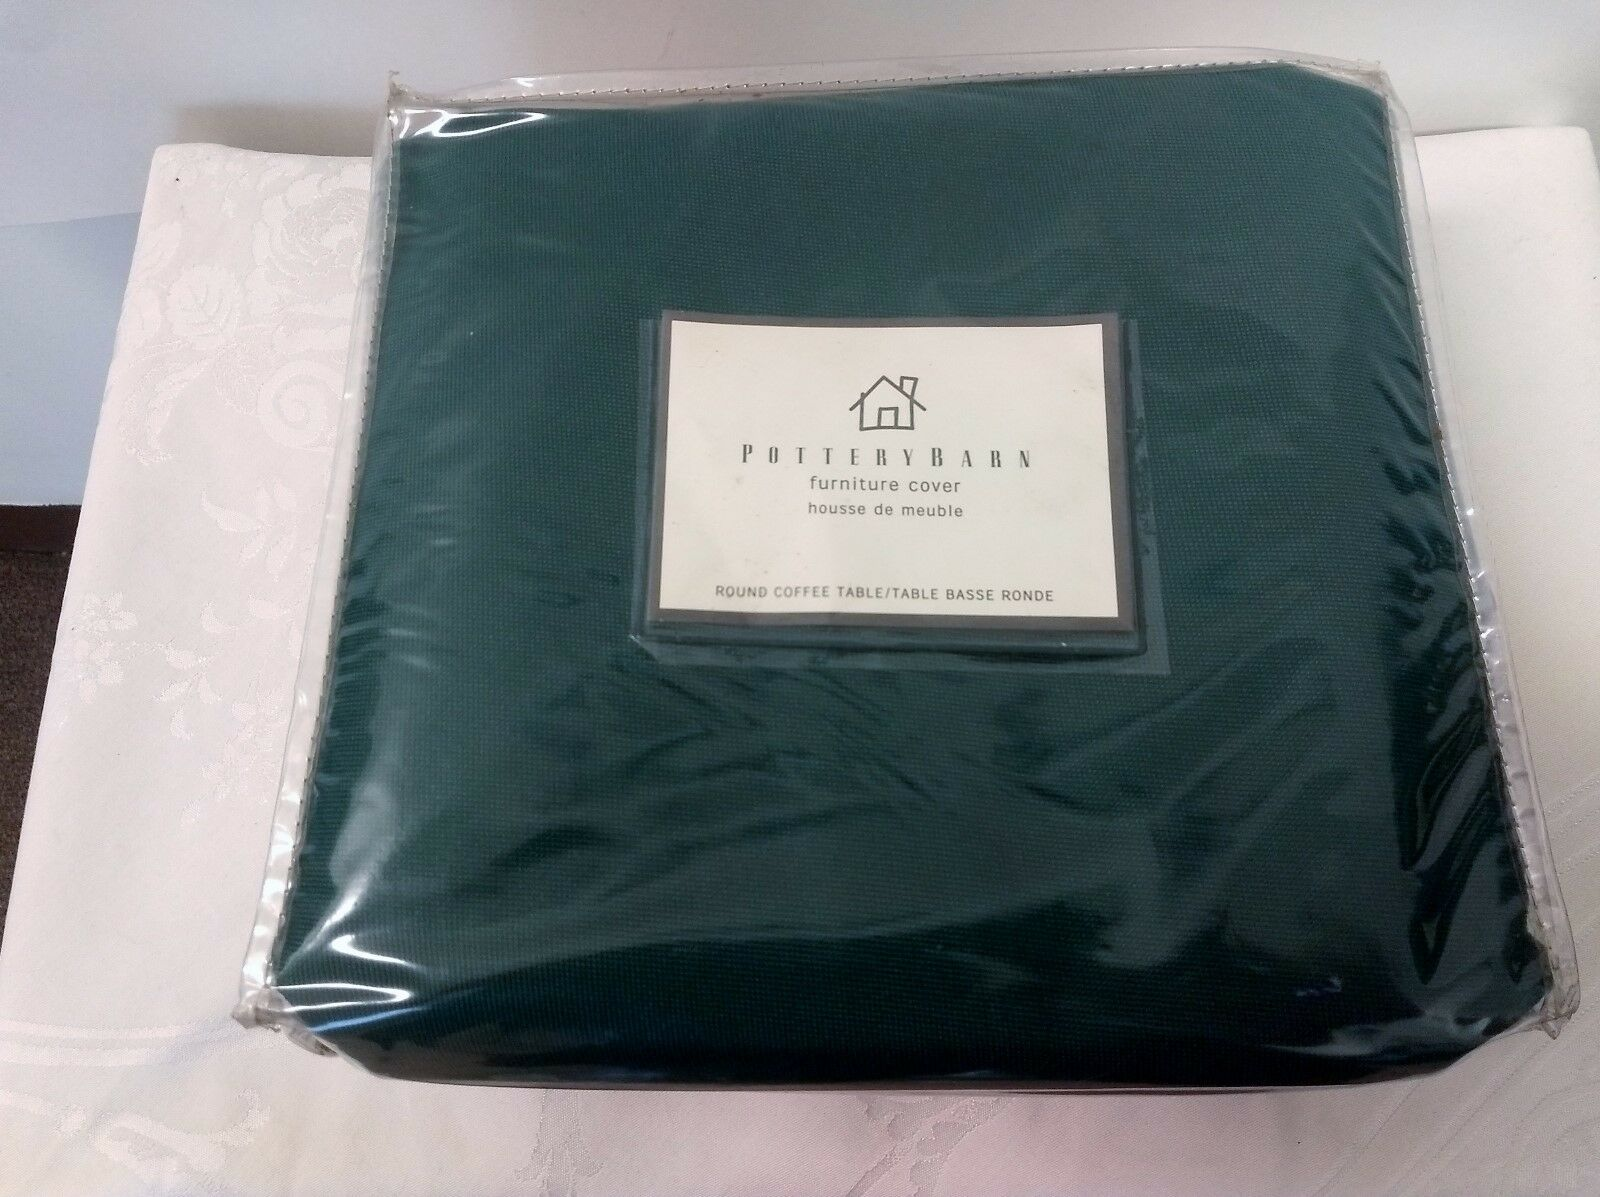 Photo Pottery Barn Furniture Table Cover Protector Round Dk Green NIP